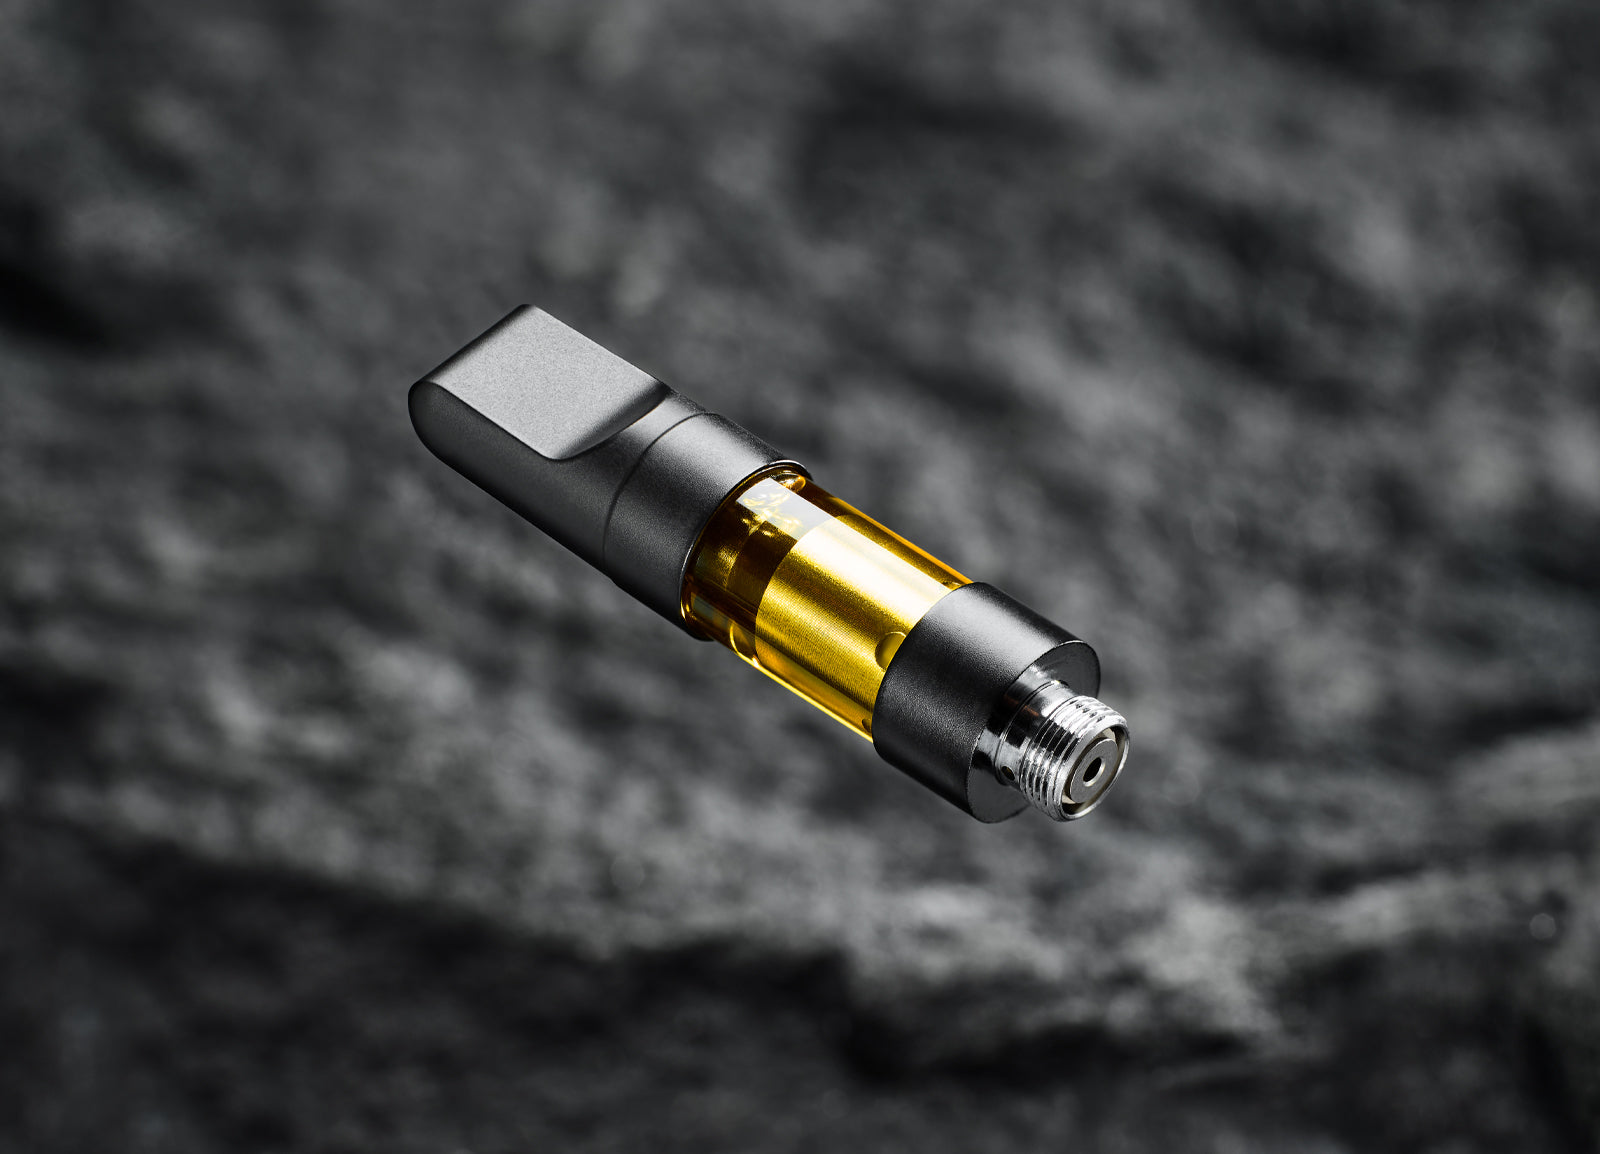 vape cartridge hovering over blurred black background